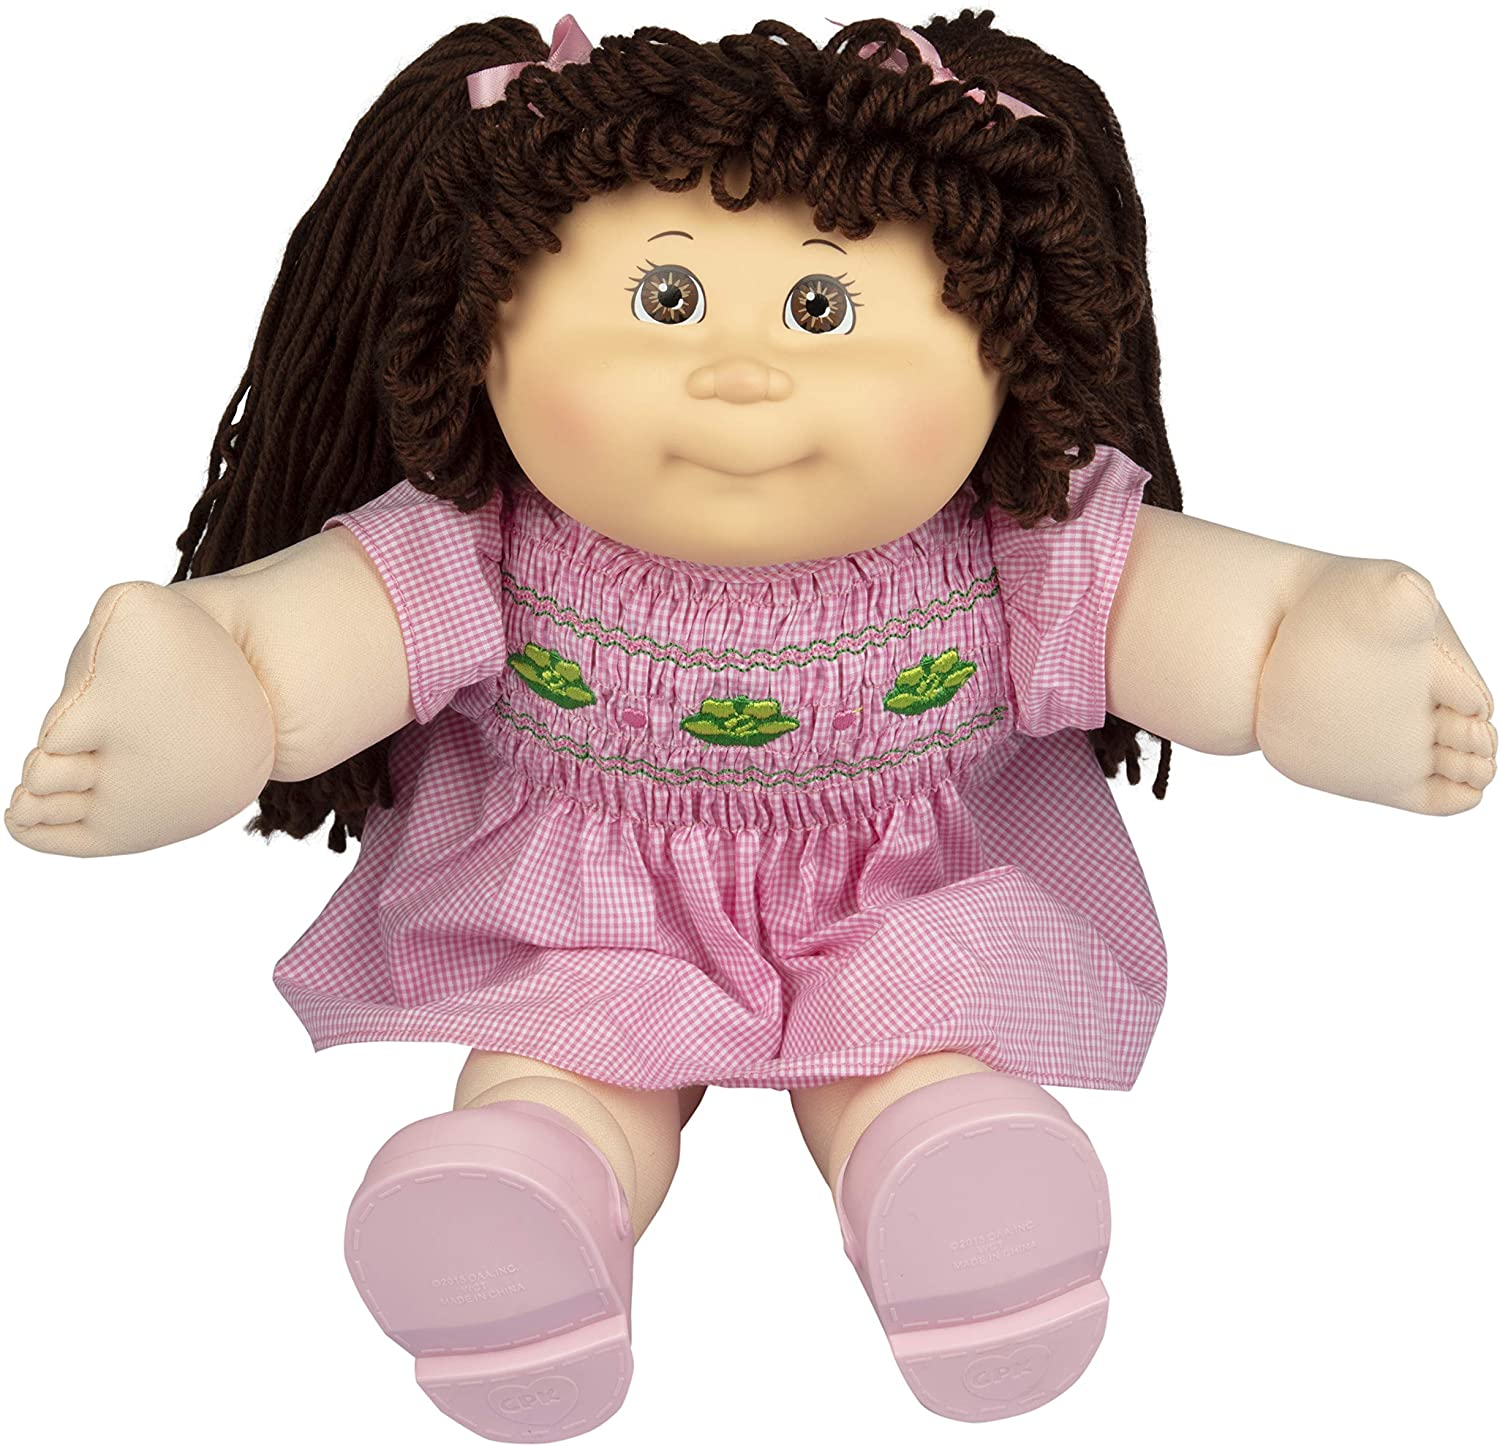 "Cabbage Patch Kids Vintage Retro Style Yarn Hair Doll - Original Brunette Hair/Brown Eyes, 16"" - Amazon Exclusive - Easy to Open Packaging"